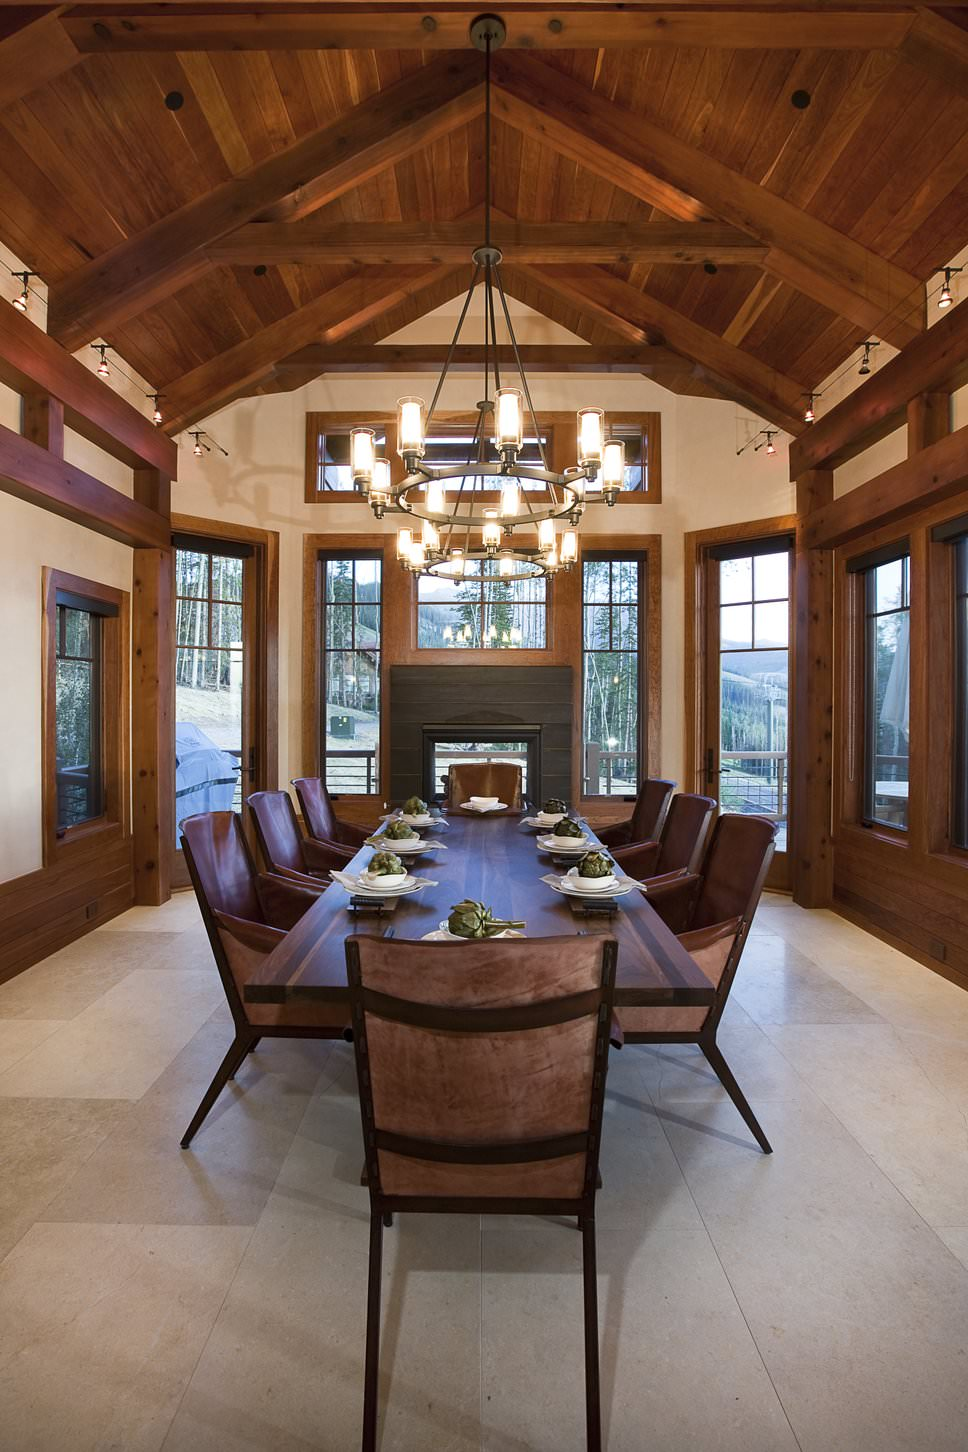 A dark wood dining set complements the moldings and a cathedral ceiling that's clad in natural wood planks. It is illuminated by round chandeliers along with natural light flowing in from the glazed windows.